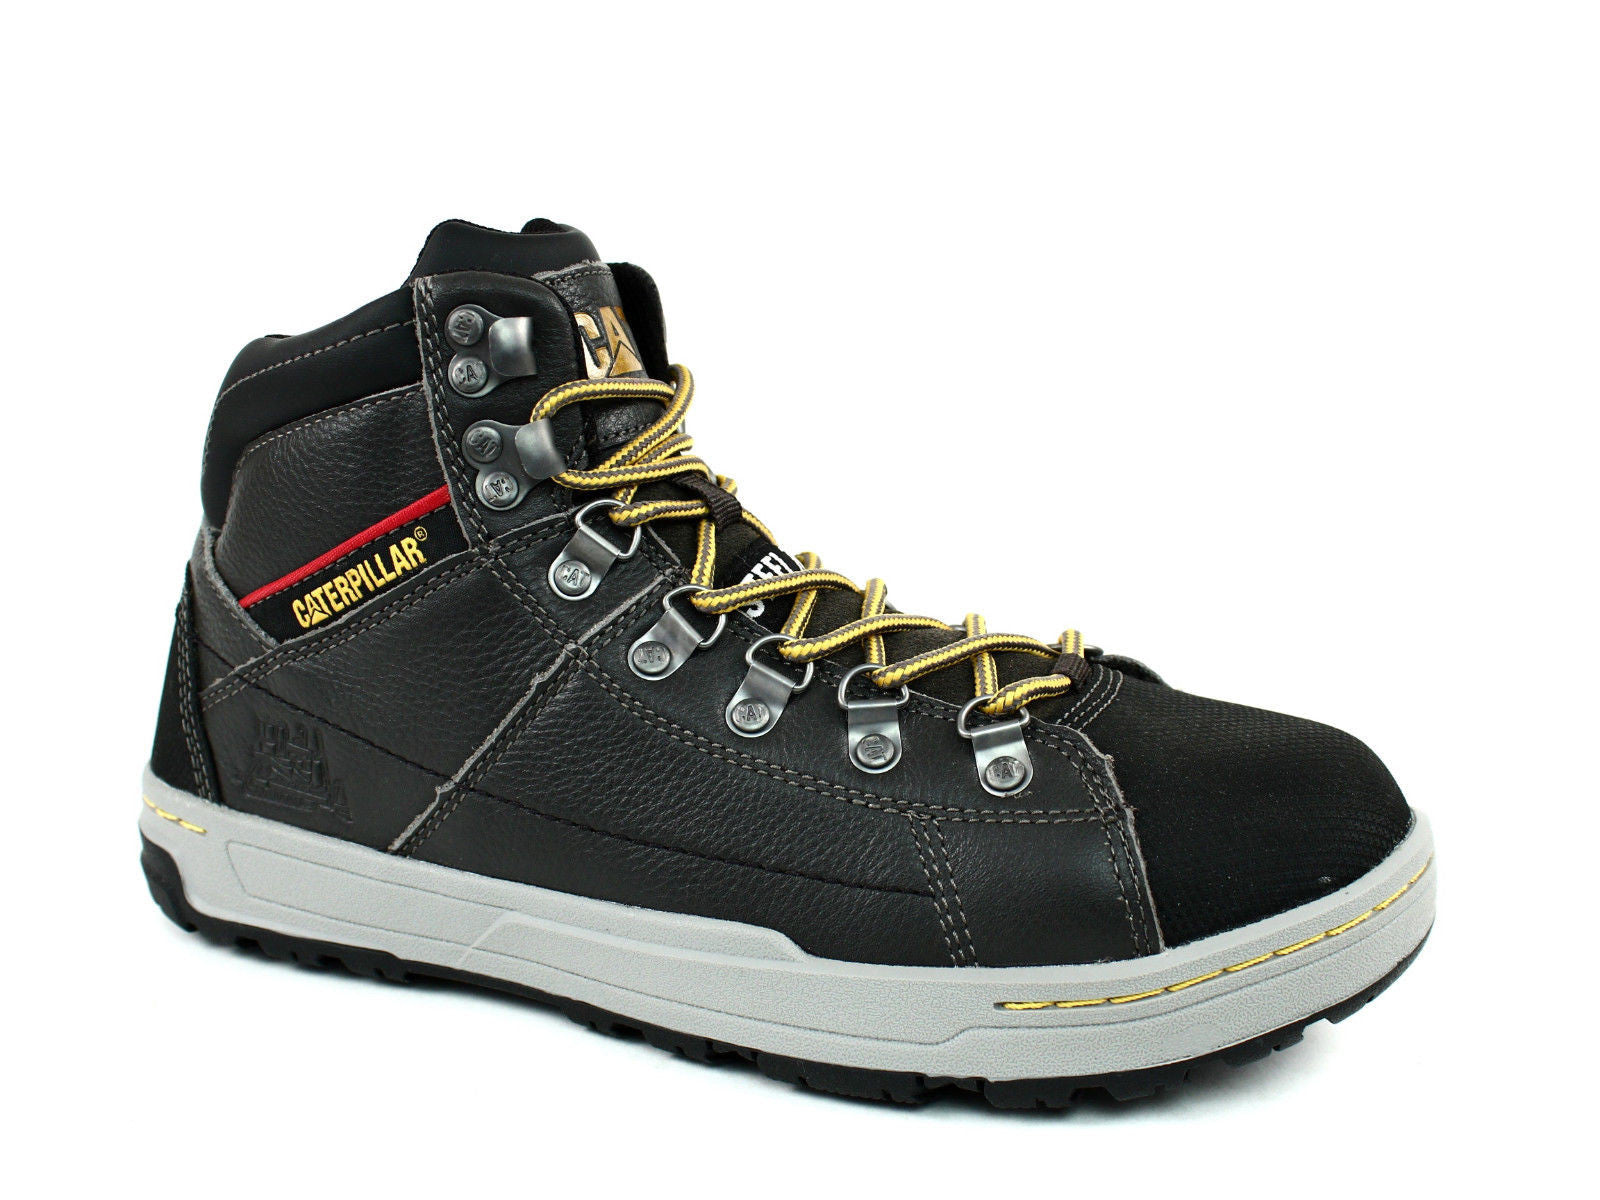 6c8adbec2e853 Men's Clearance – ShoeVariety.com